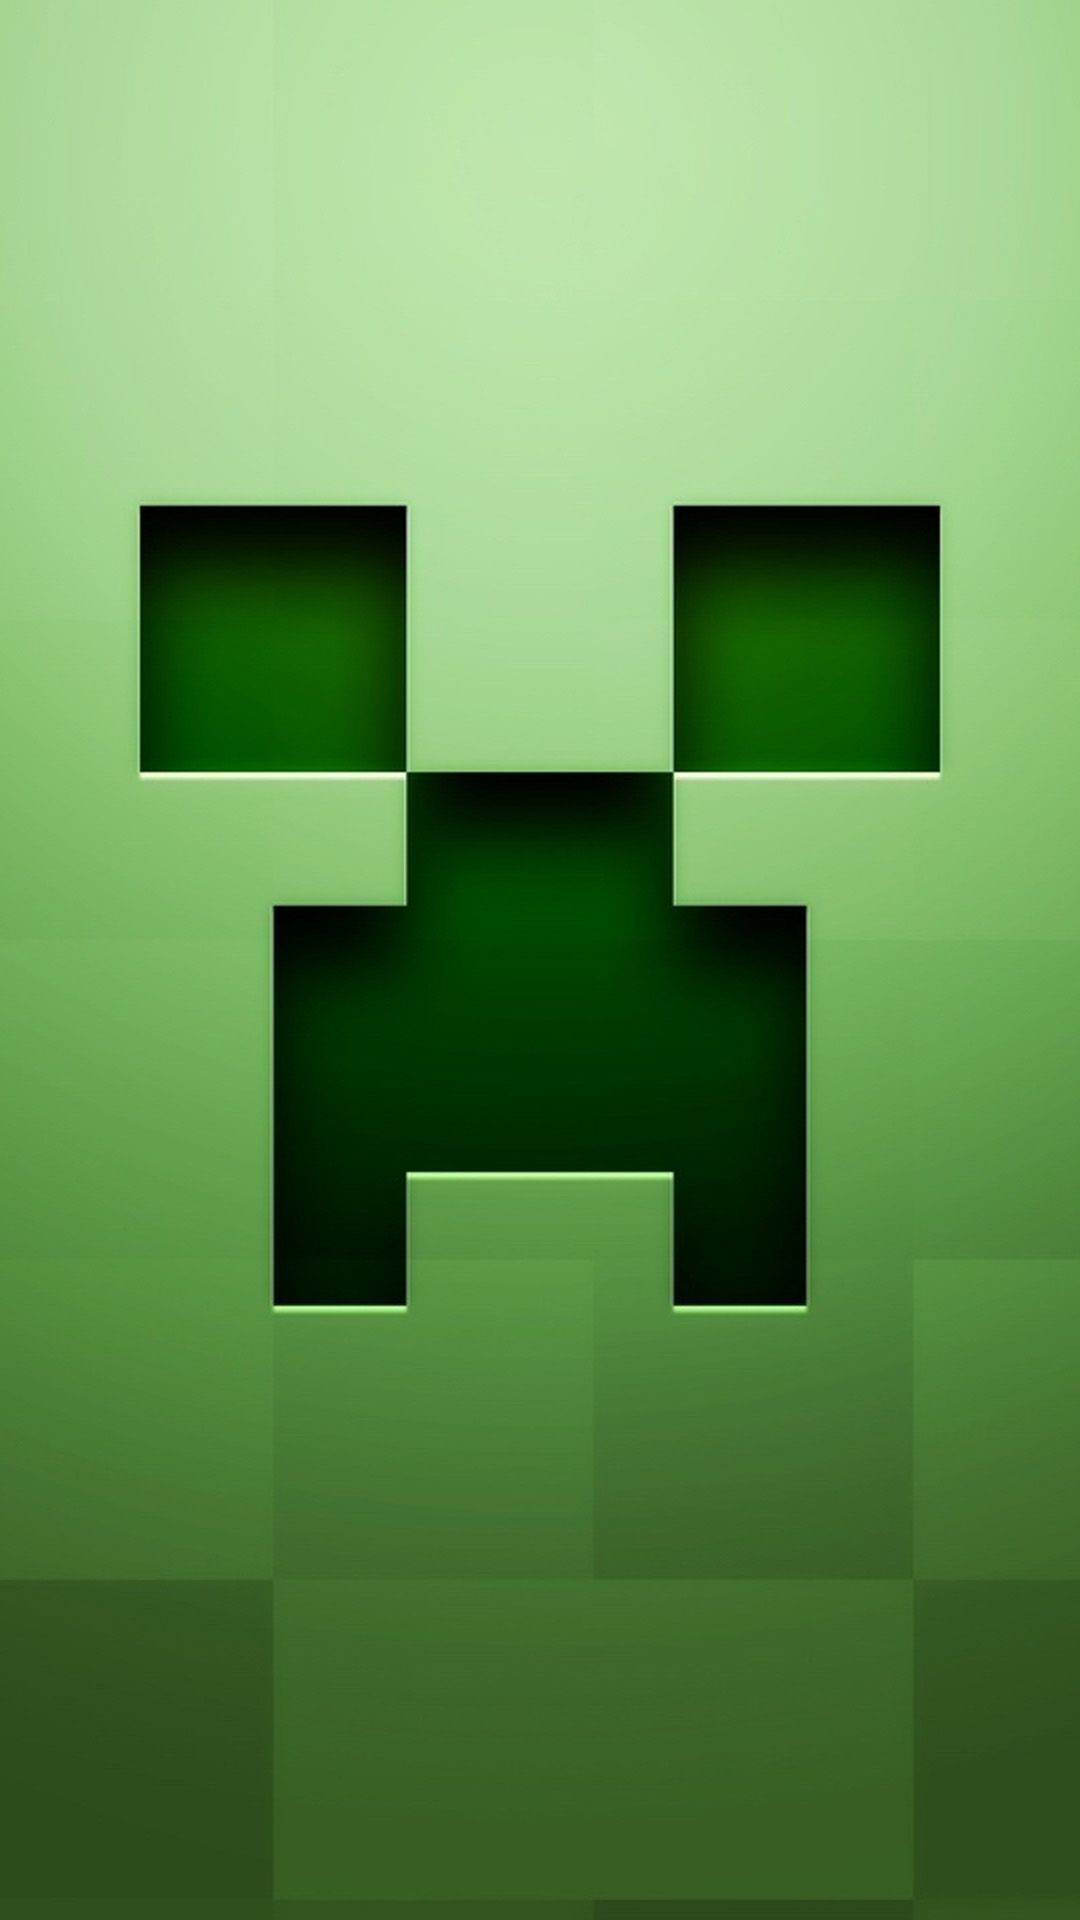 Minecraft Android Background Minecraft Wallpaper Minecraft Posters Anime Wallpaper Iphone